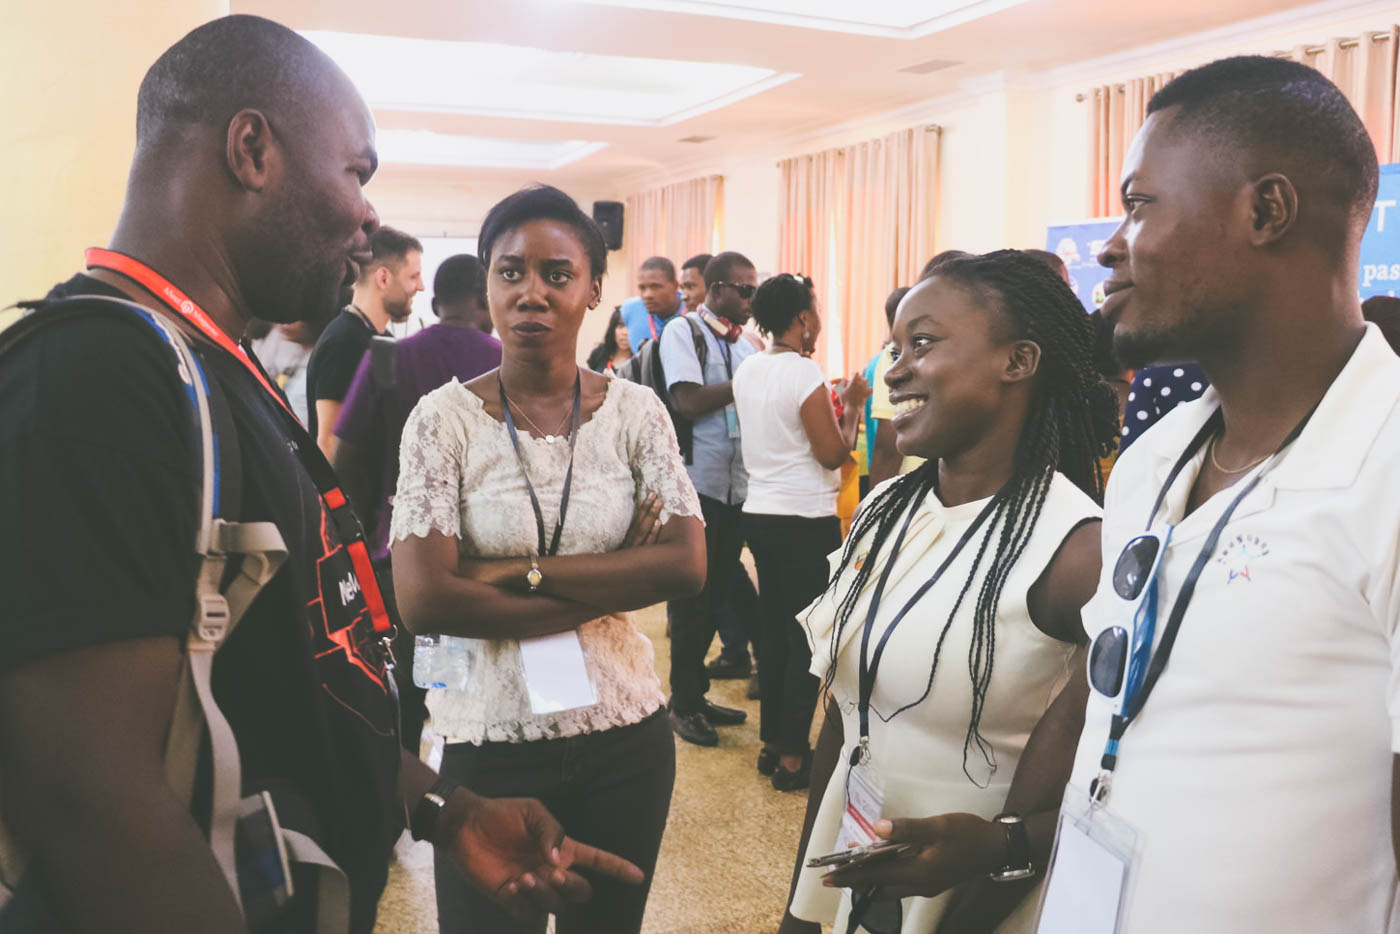 Field Notes: CMS Africa Summit